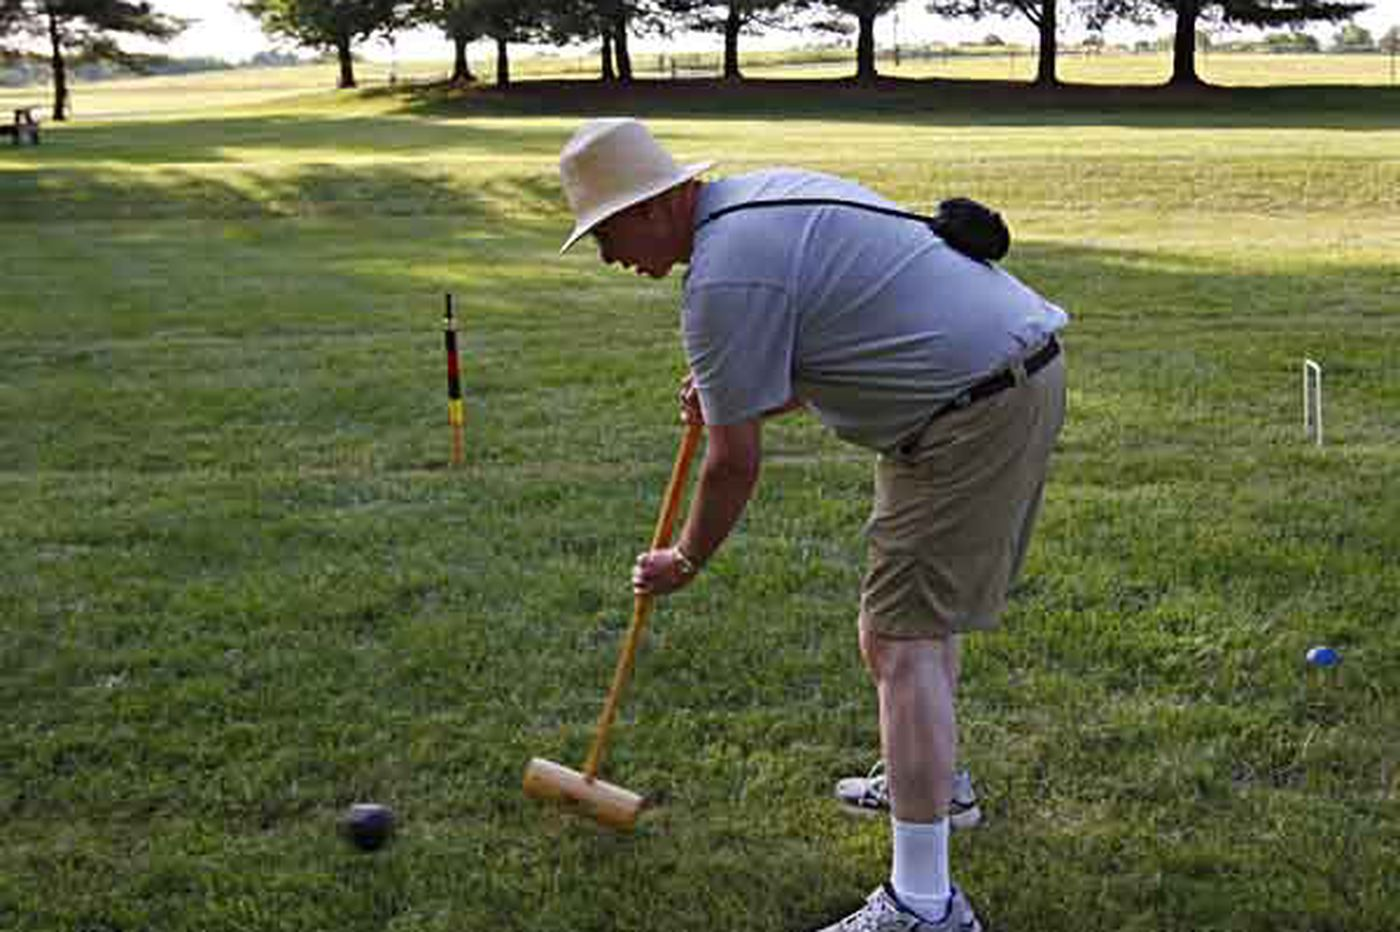 Kevin Riordan: Adults play a mean game of croquet in Smithville Park